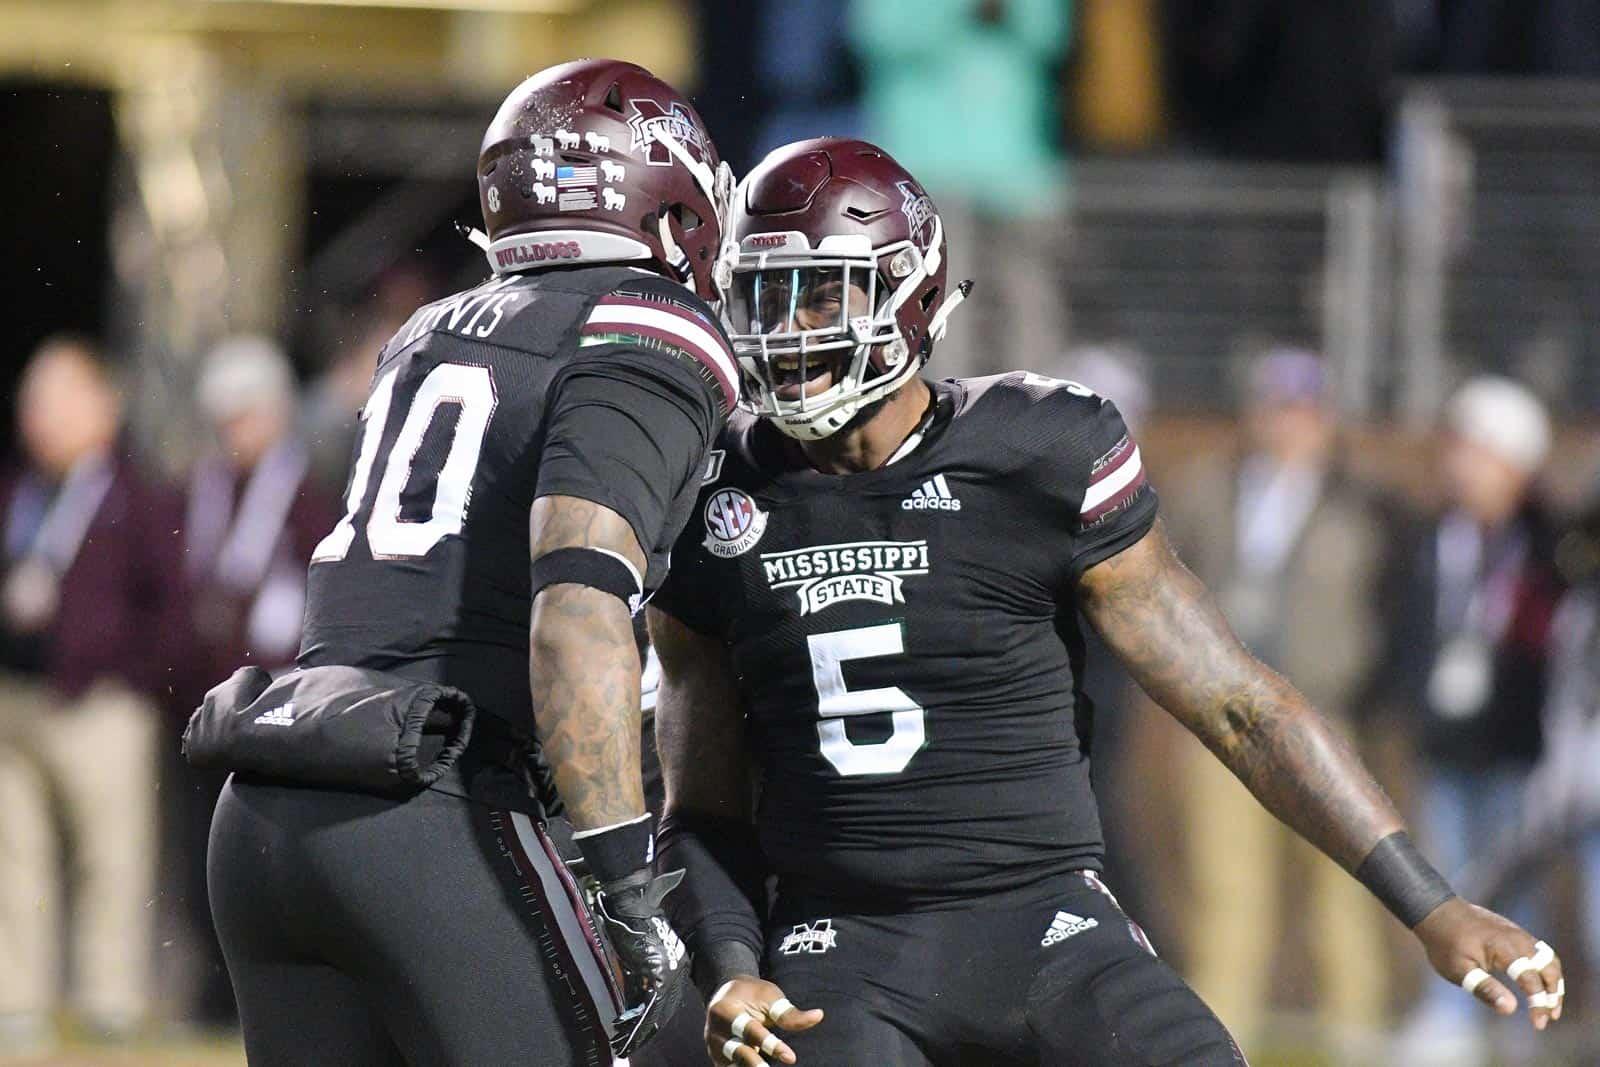 Mississippi State adds ETSU to 2022 football schedule